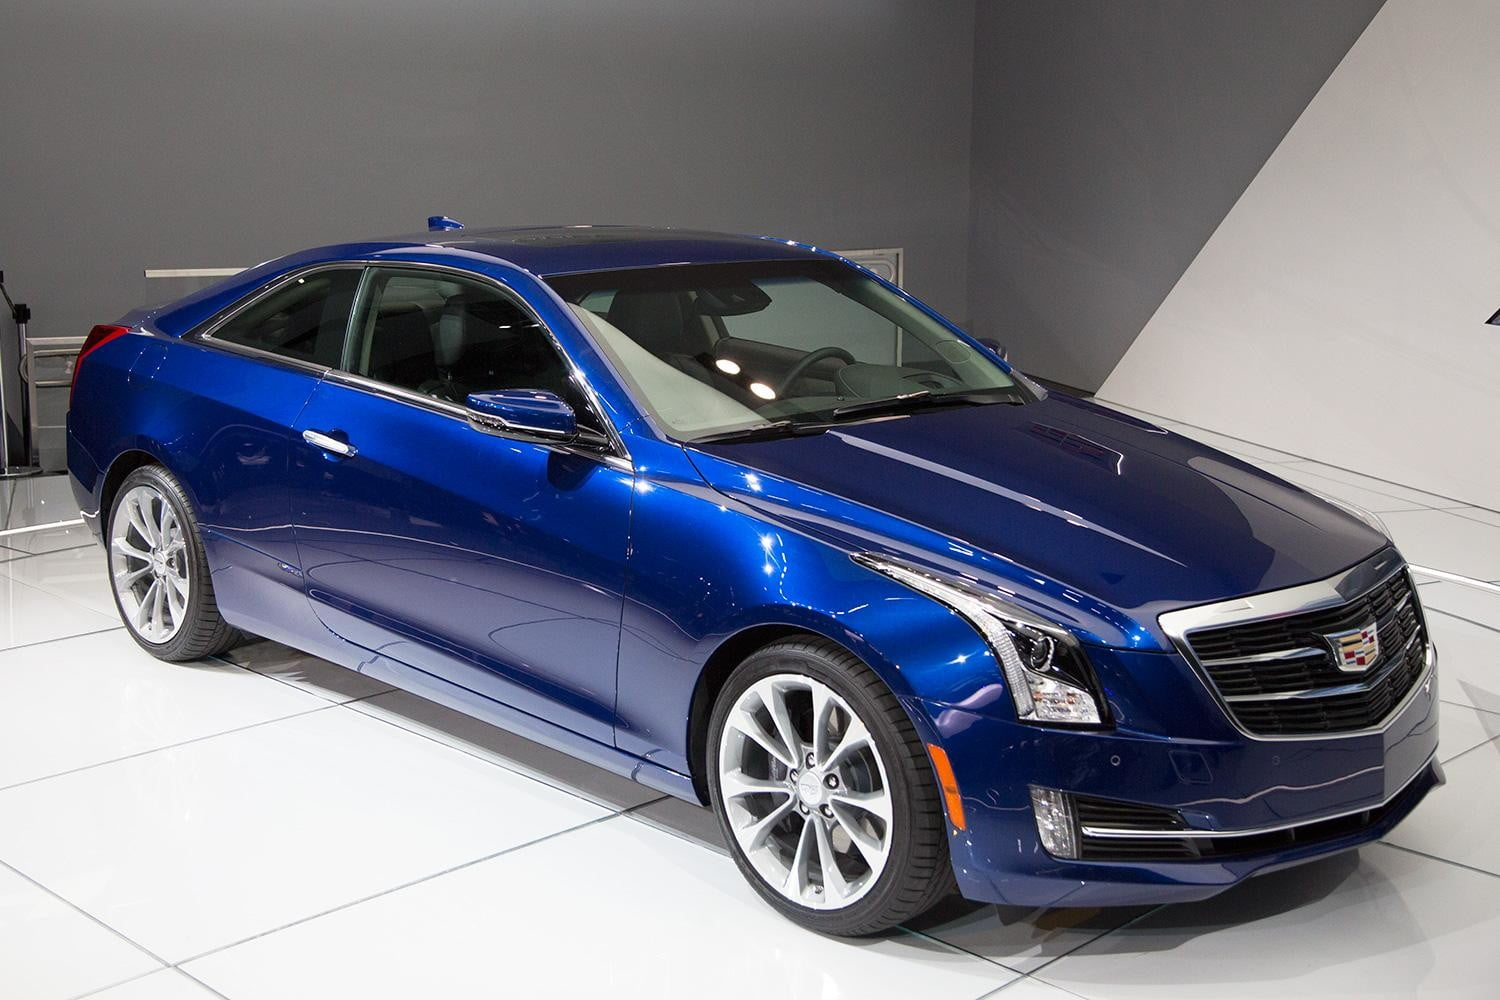 2015 Cadillac ATS Coupe front right